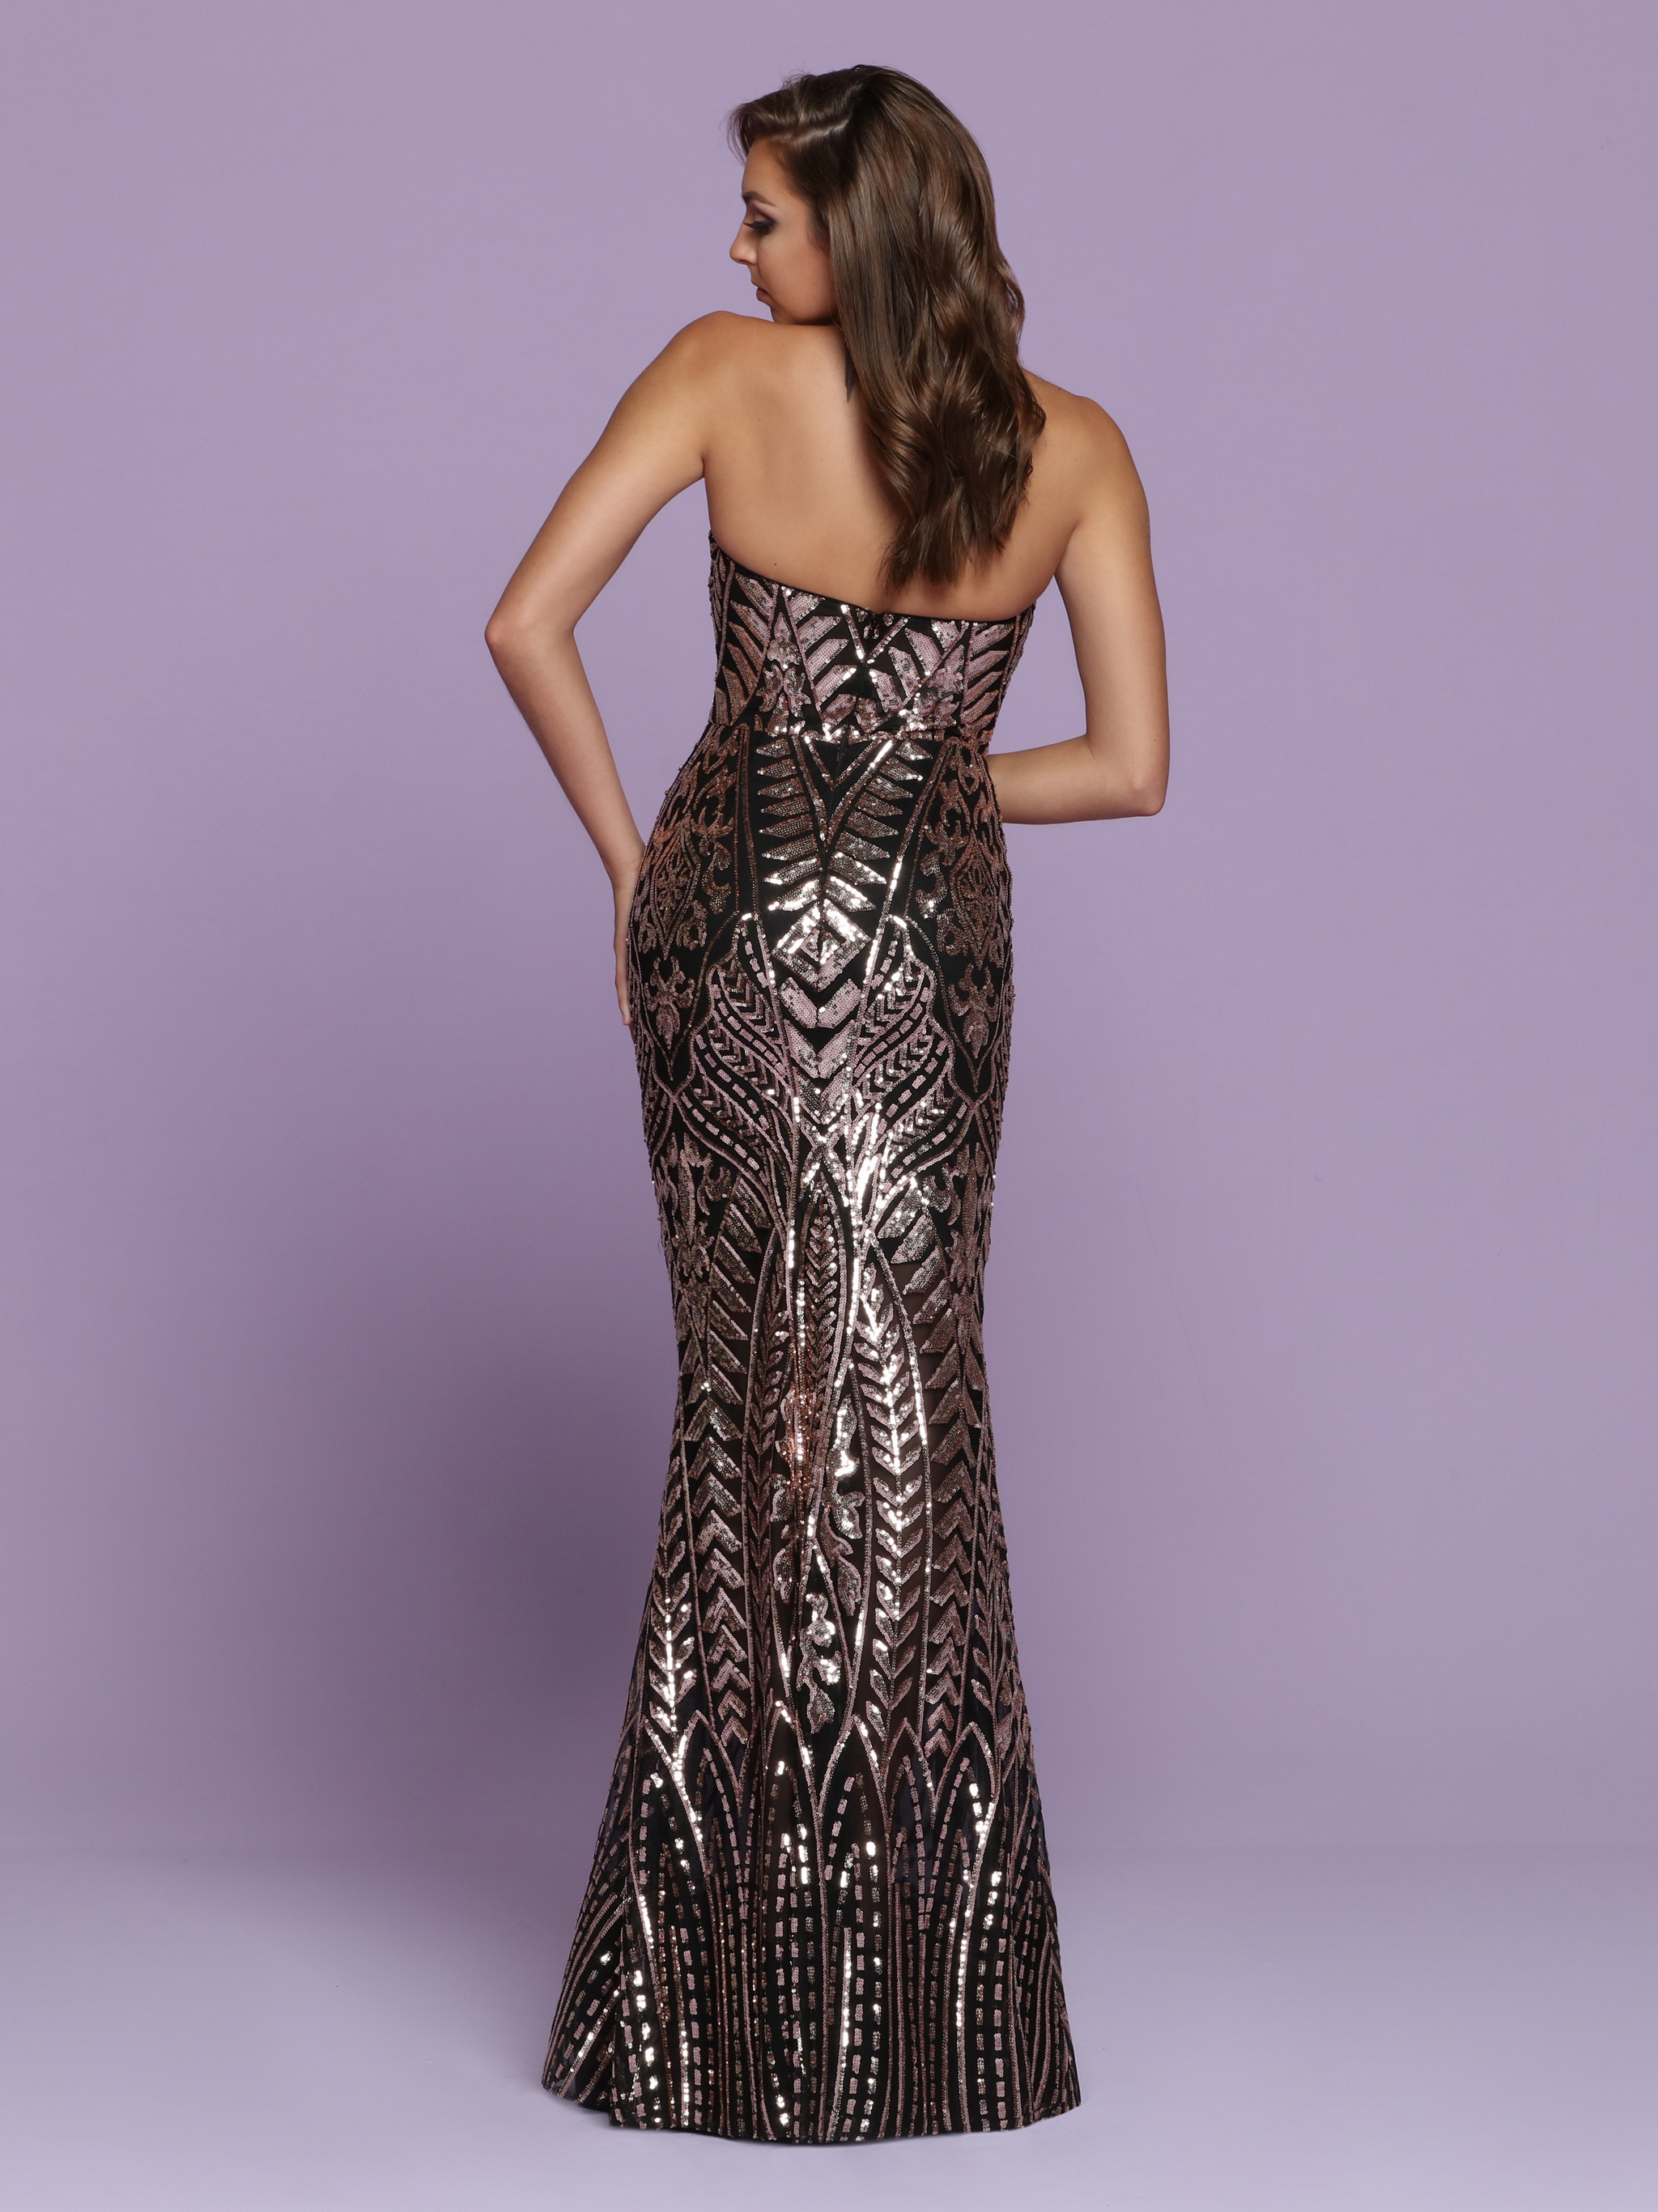 Image showing back view of style #72117